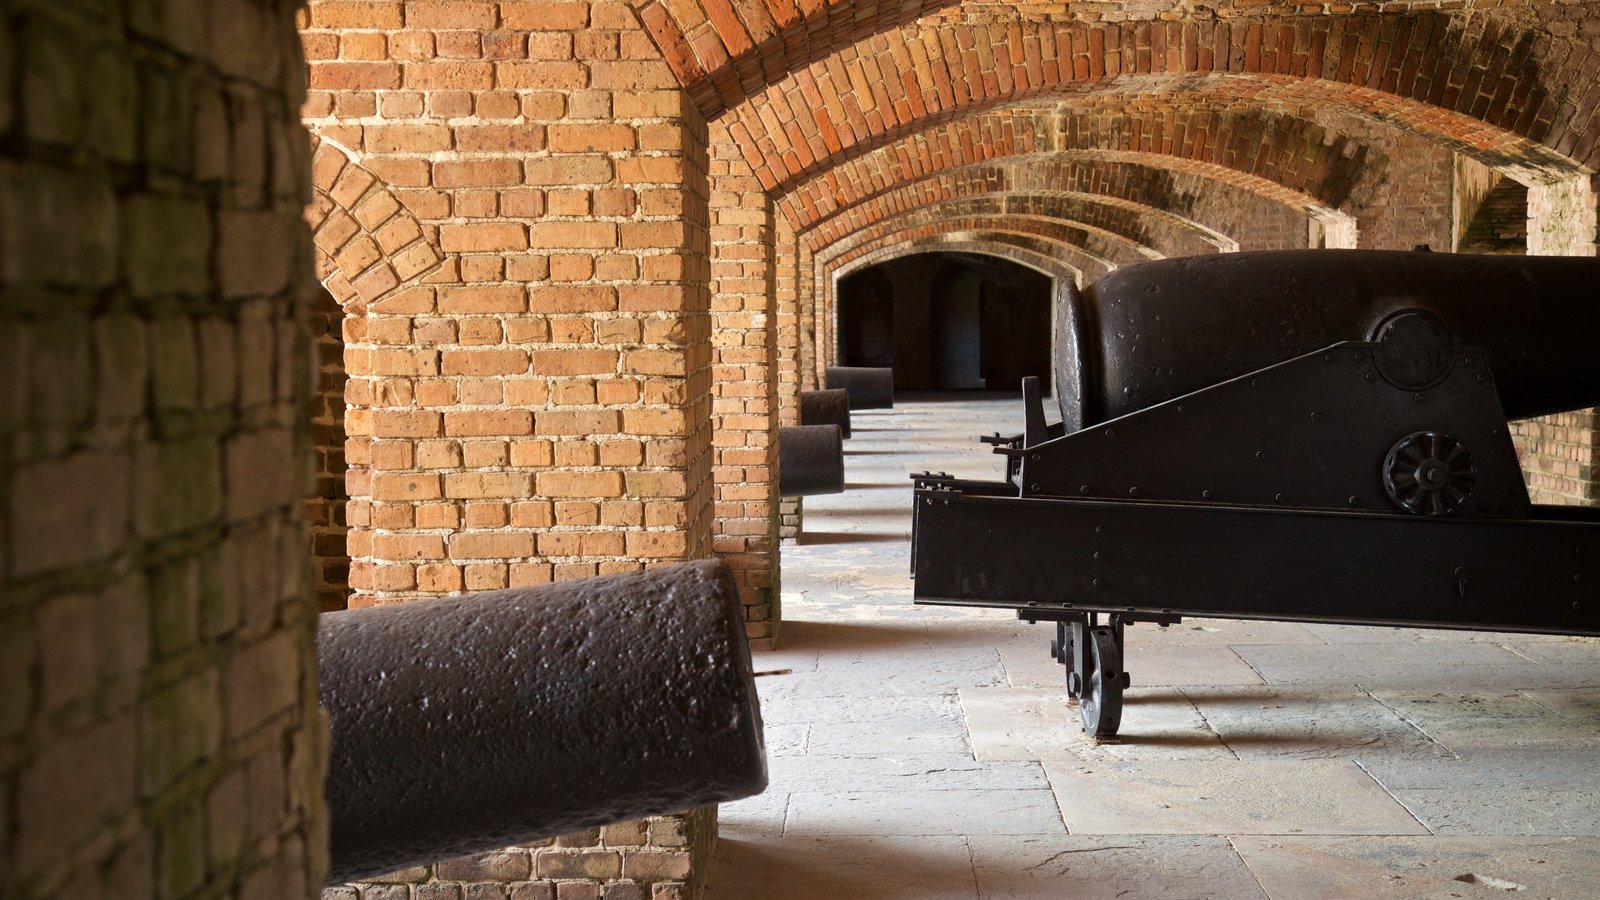 Fort Zachary Taylor Historic State Park showing interior views, heritage elements and military items